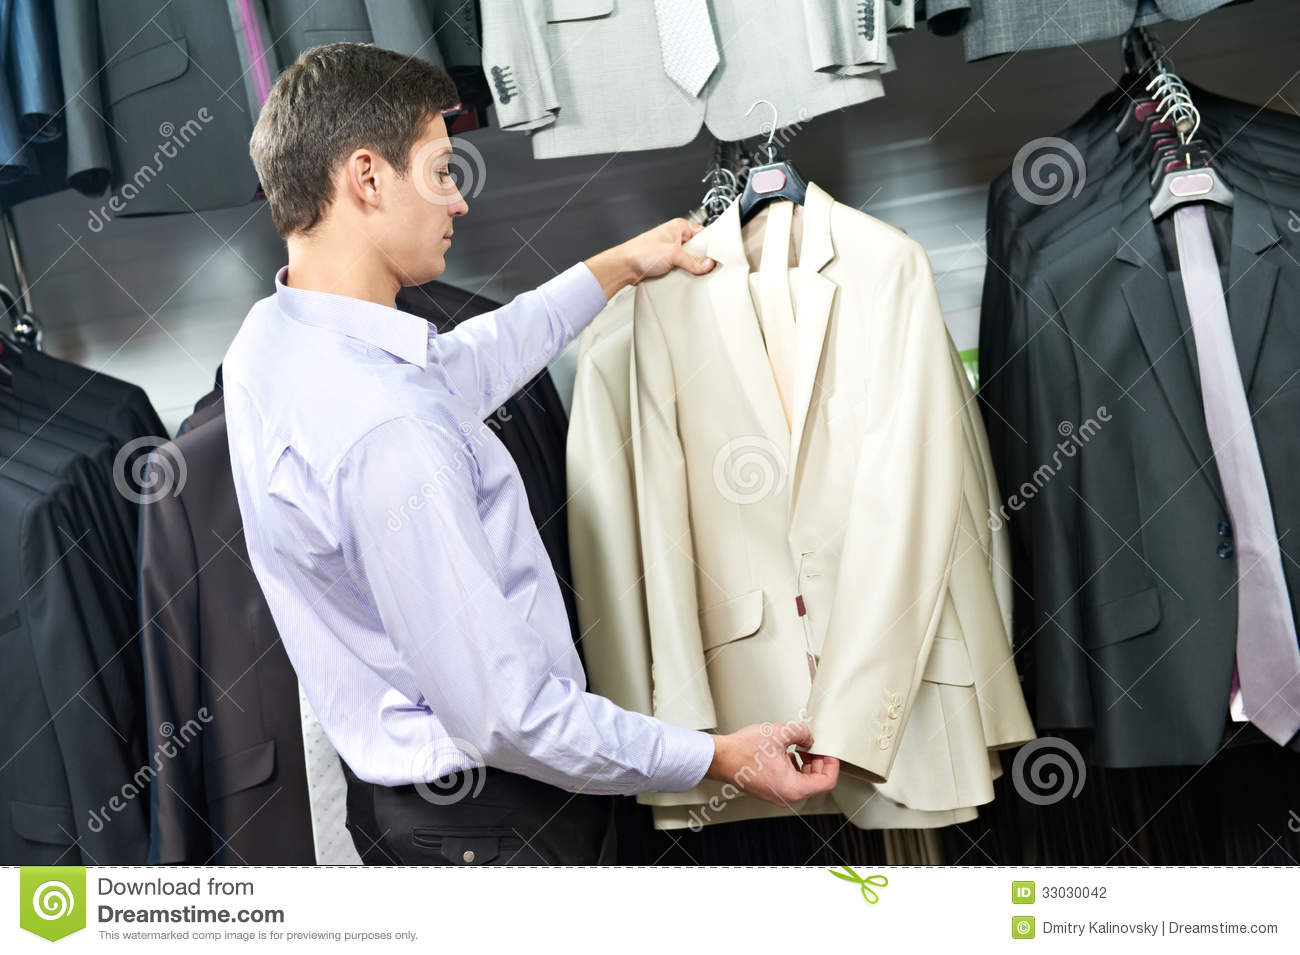 Man And Assistant At Apparel Clothes Shopping Stock Photos - Image ...